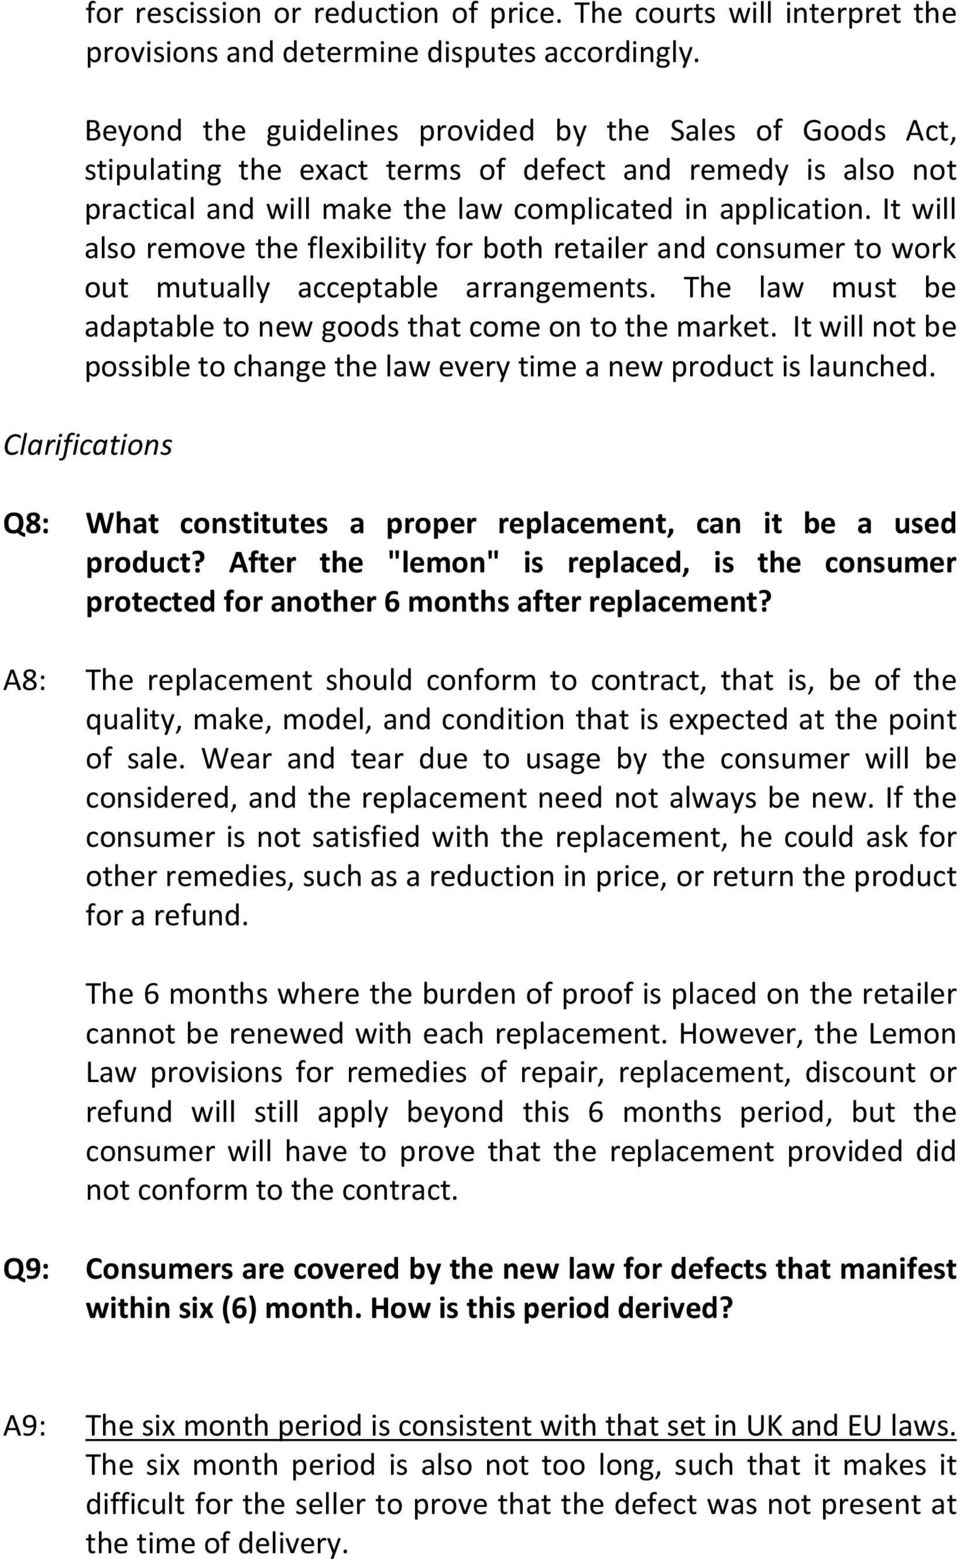 It will also remove the flexibility for both retailer and consumer to work out mutually acceptable arrangements. The law must be adaptable to new goods that come on to the market.